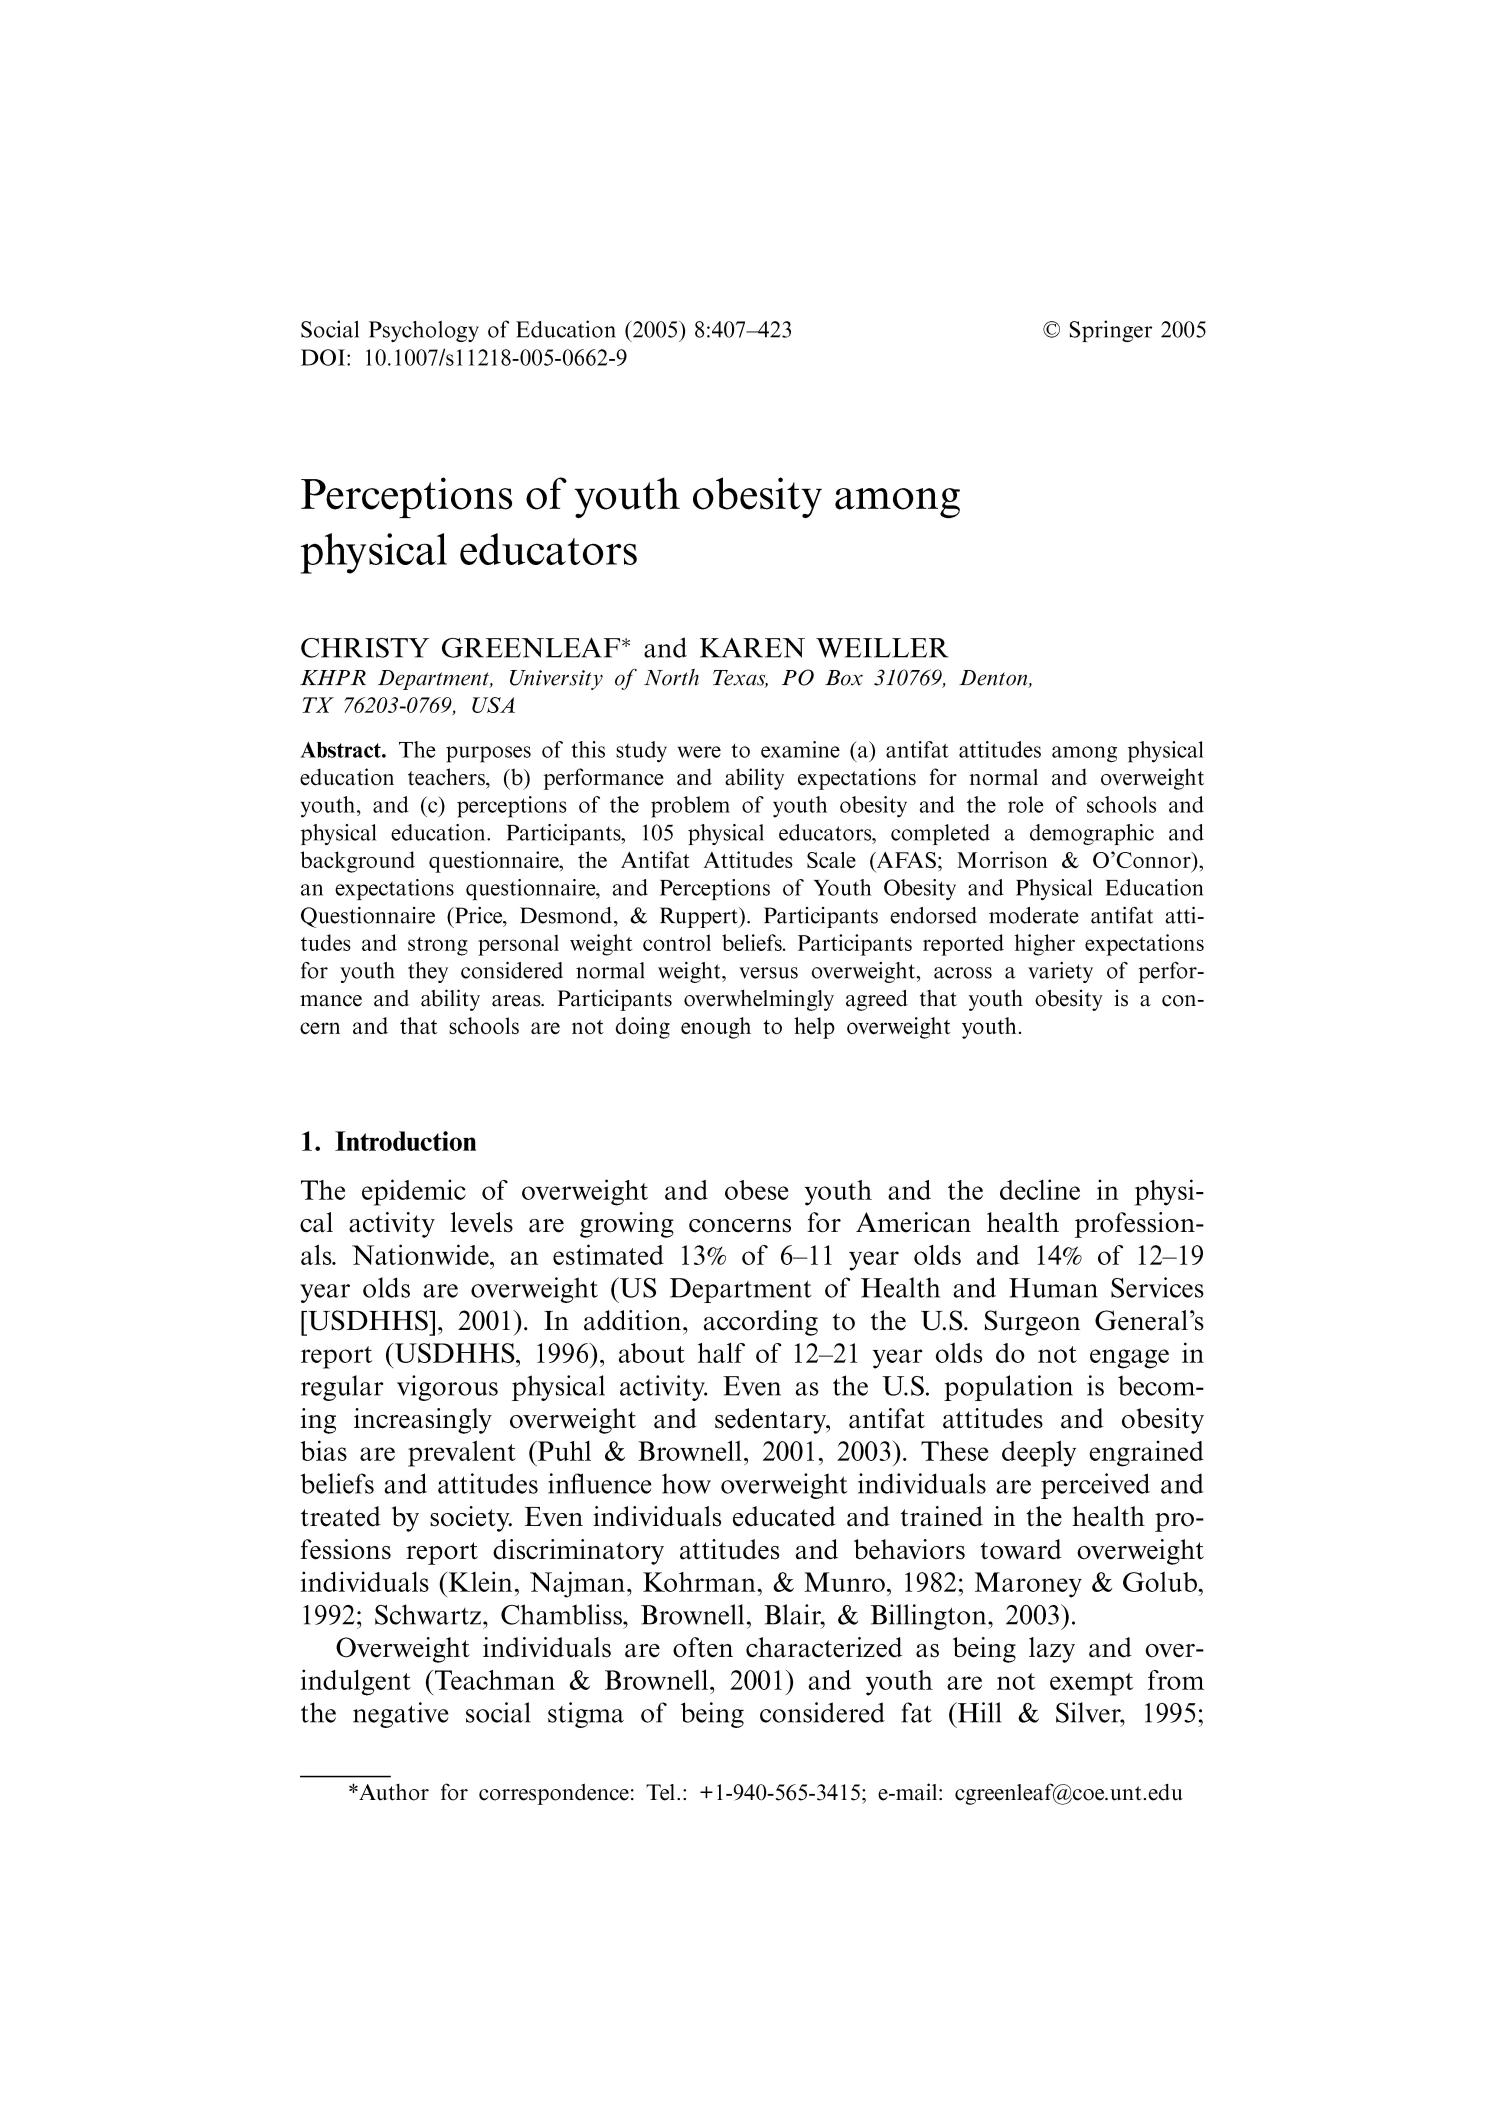 Perceptions of Youth Obesity Among Physical Educators                                                                                                      407